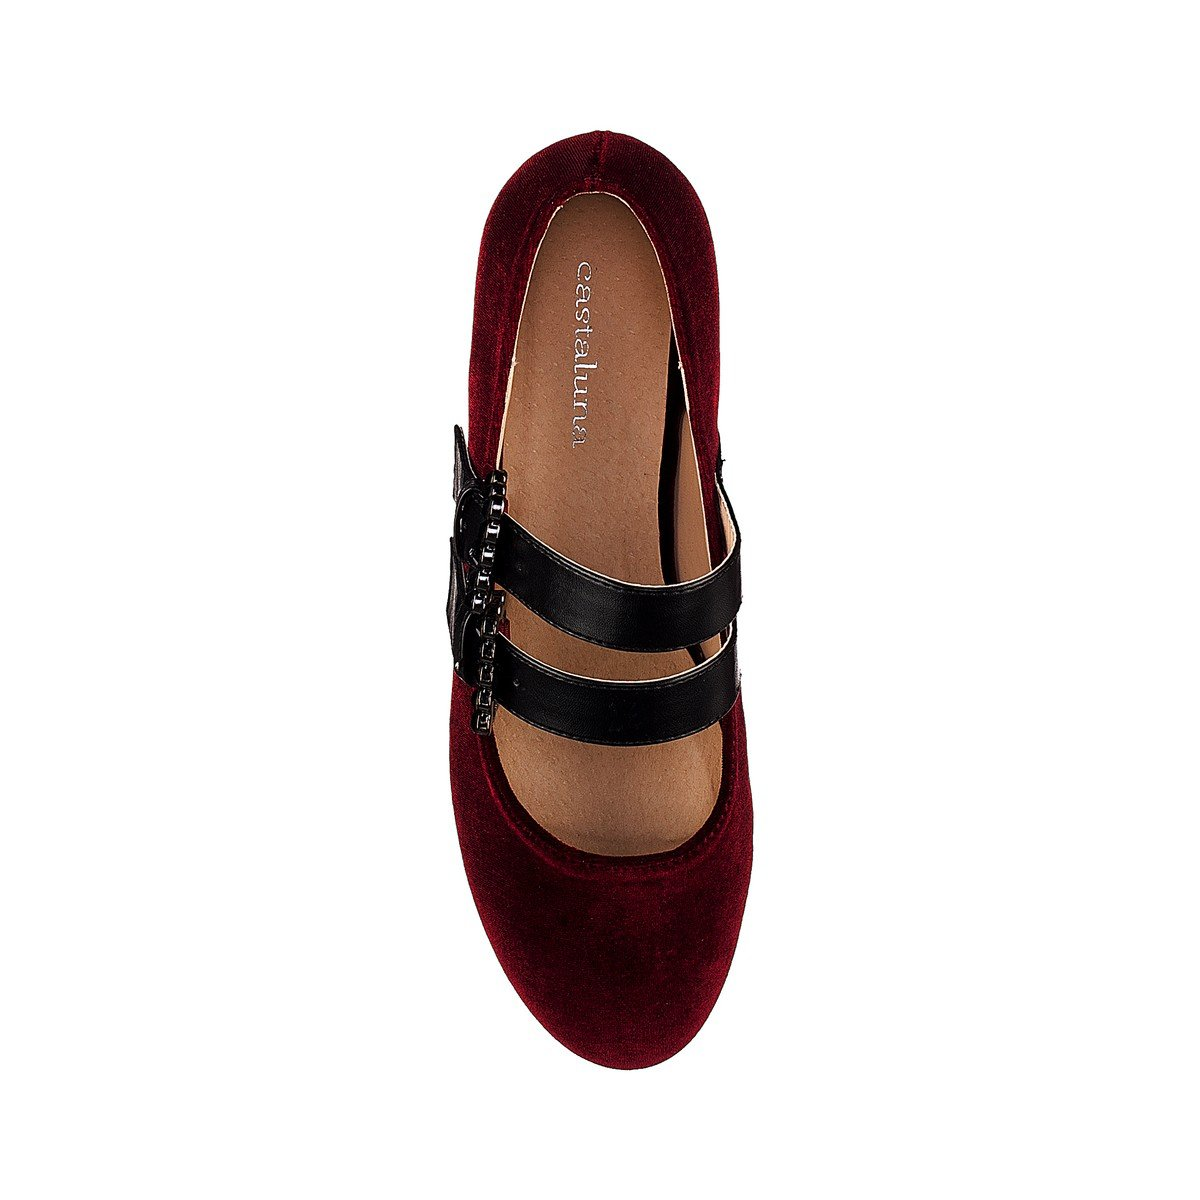 Castaluna Womens Ballet Pumps With Straps And Textile Uppers Wide Fit Sizes 38-45